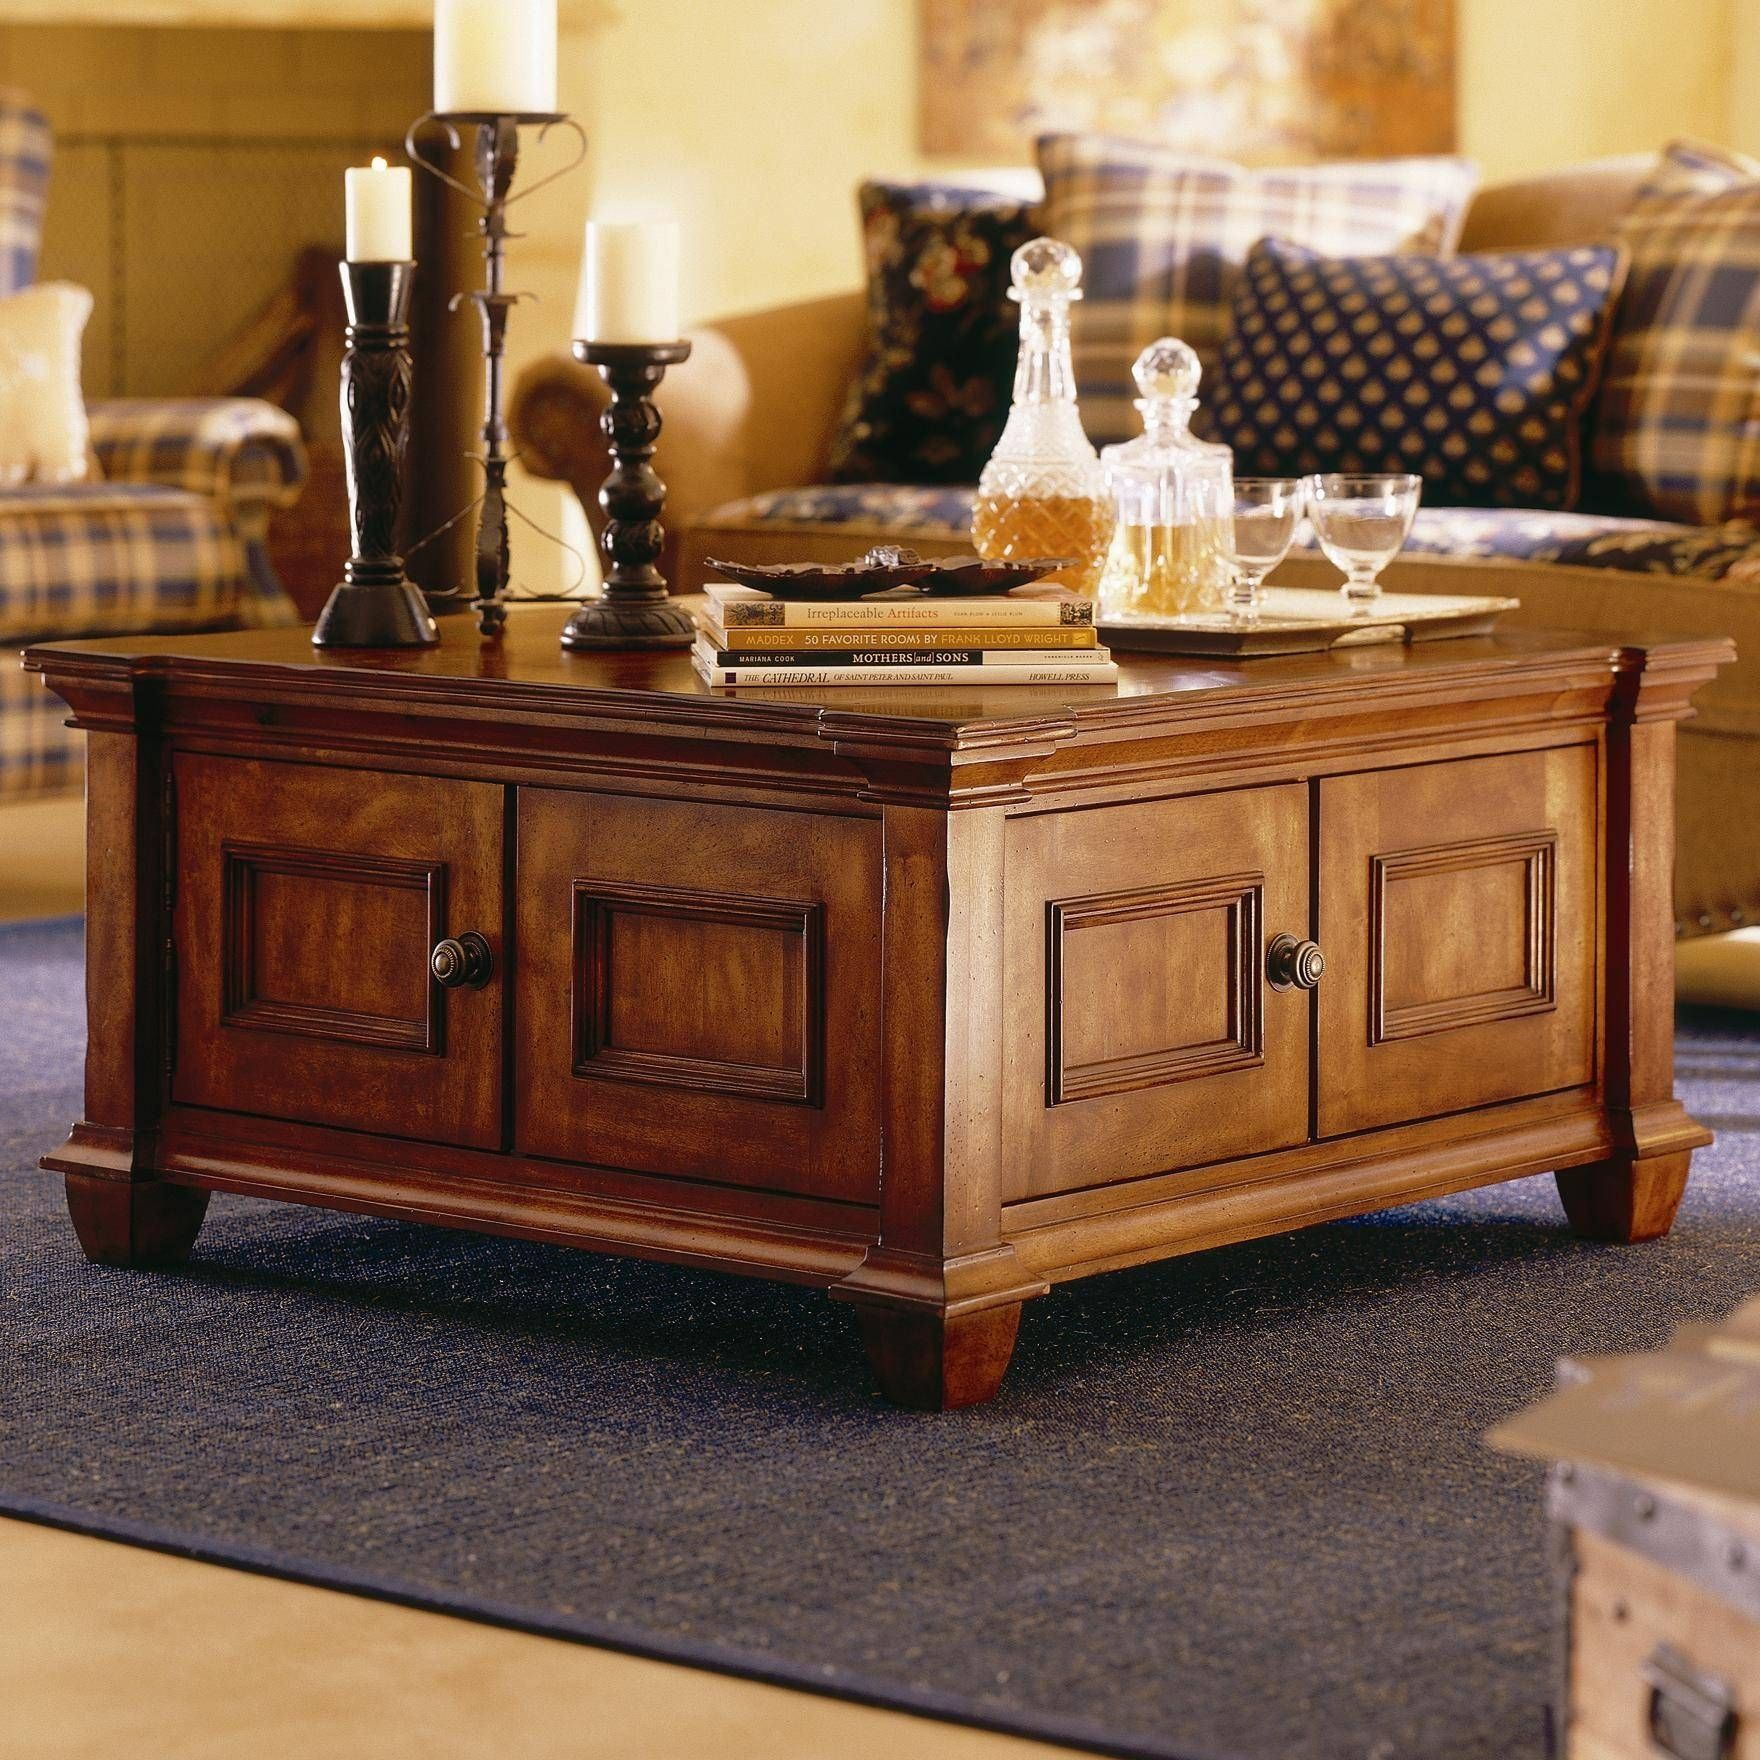 Kanson Square Coffee Table With Storage Cubes http